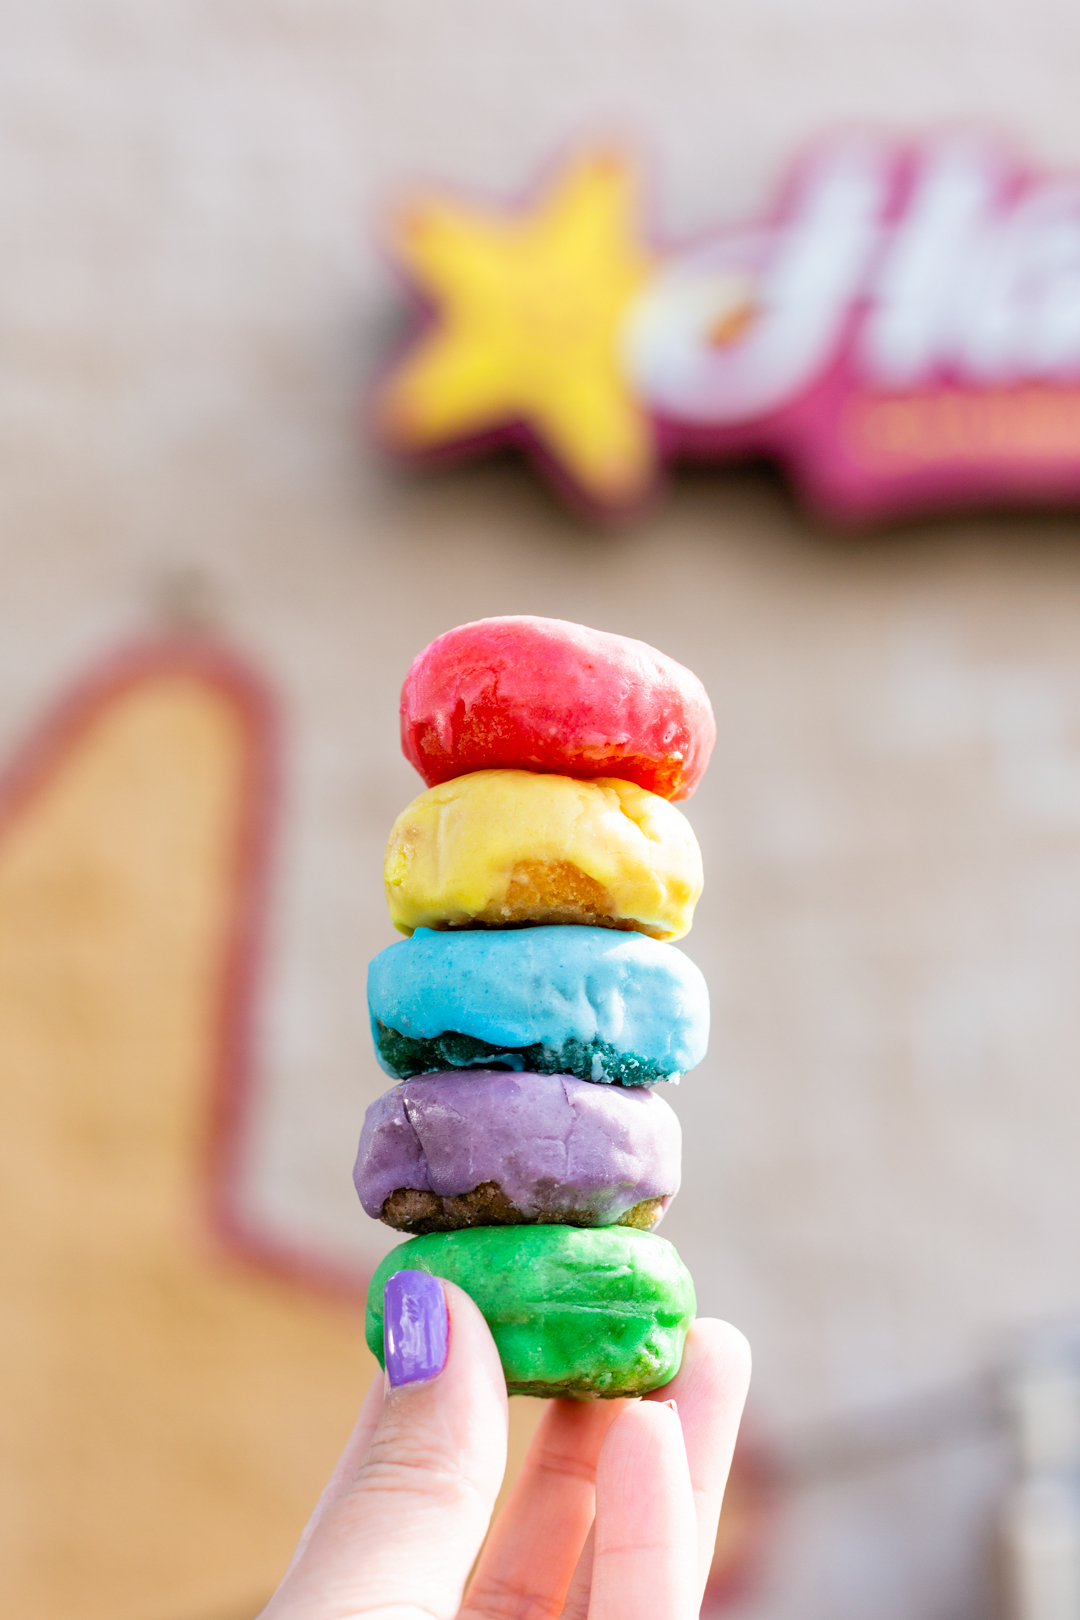 Froot Loop donuts exist and you need to get them at Hardees now before they are gone.